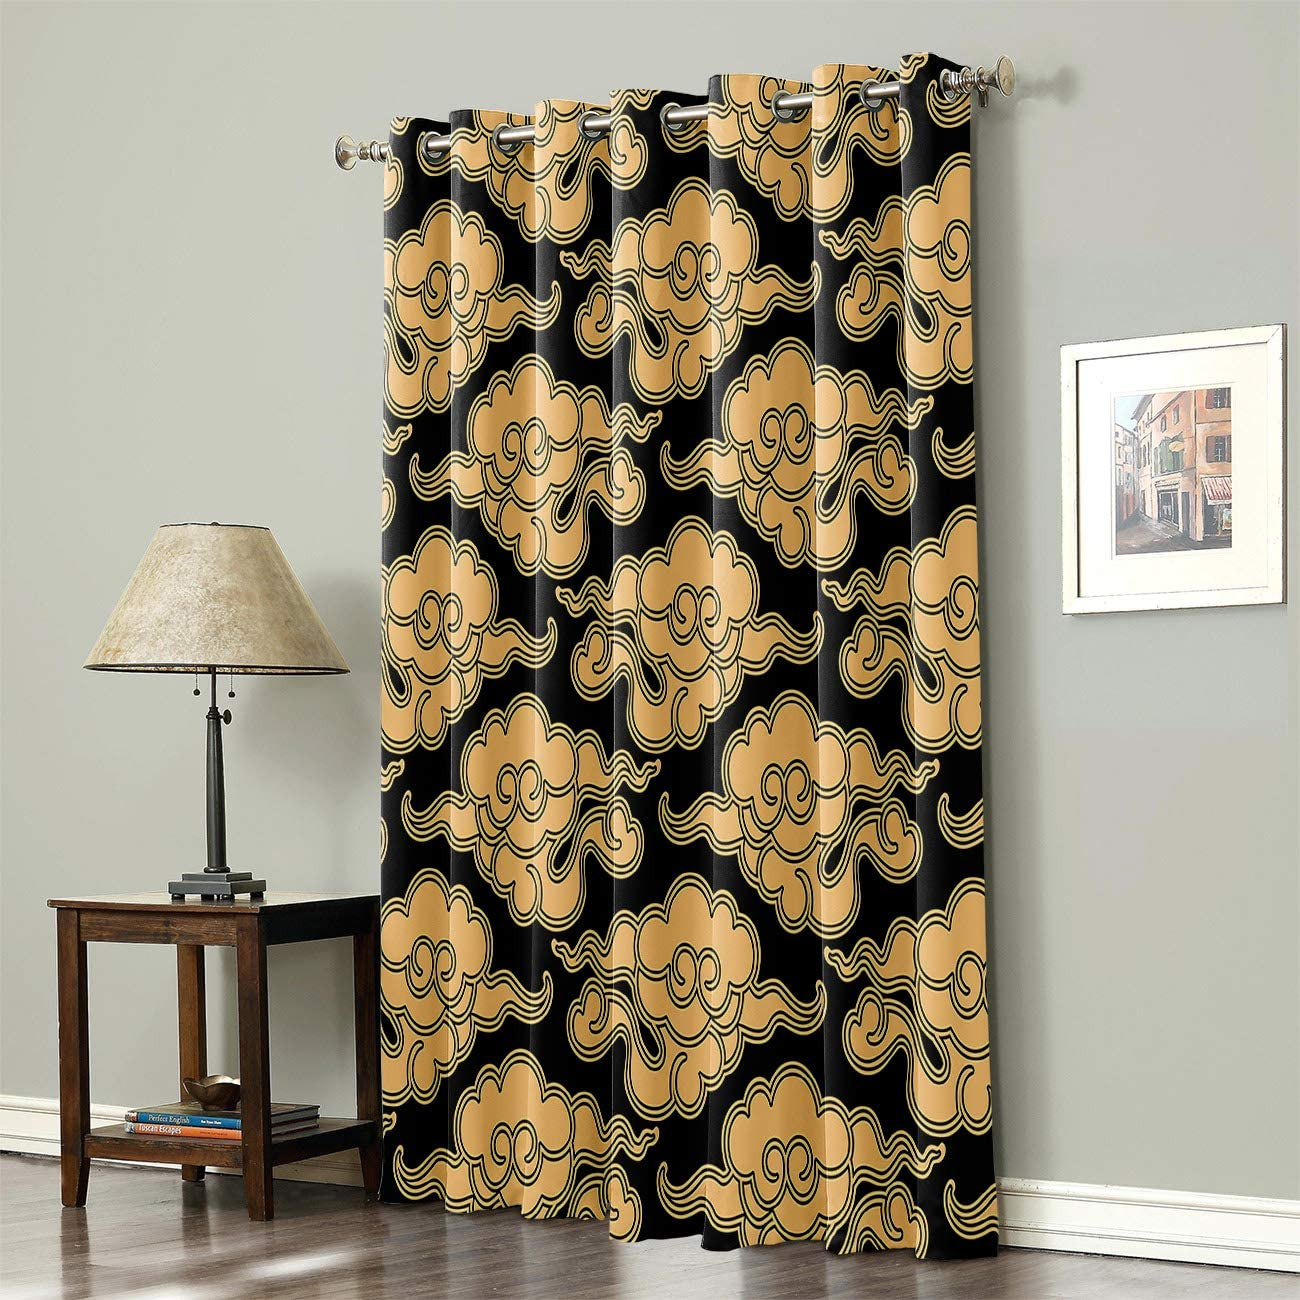 Mosphee Thermal Insulated Blackout Window Curtain Heat Blocking Home Decoration Panel Pairs for Windows with Grommet Top Yellow Pattern Chinese Vintage Cloud Japanese China Oriental Design 52x84 Inch